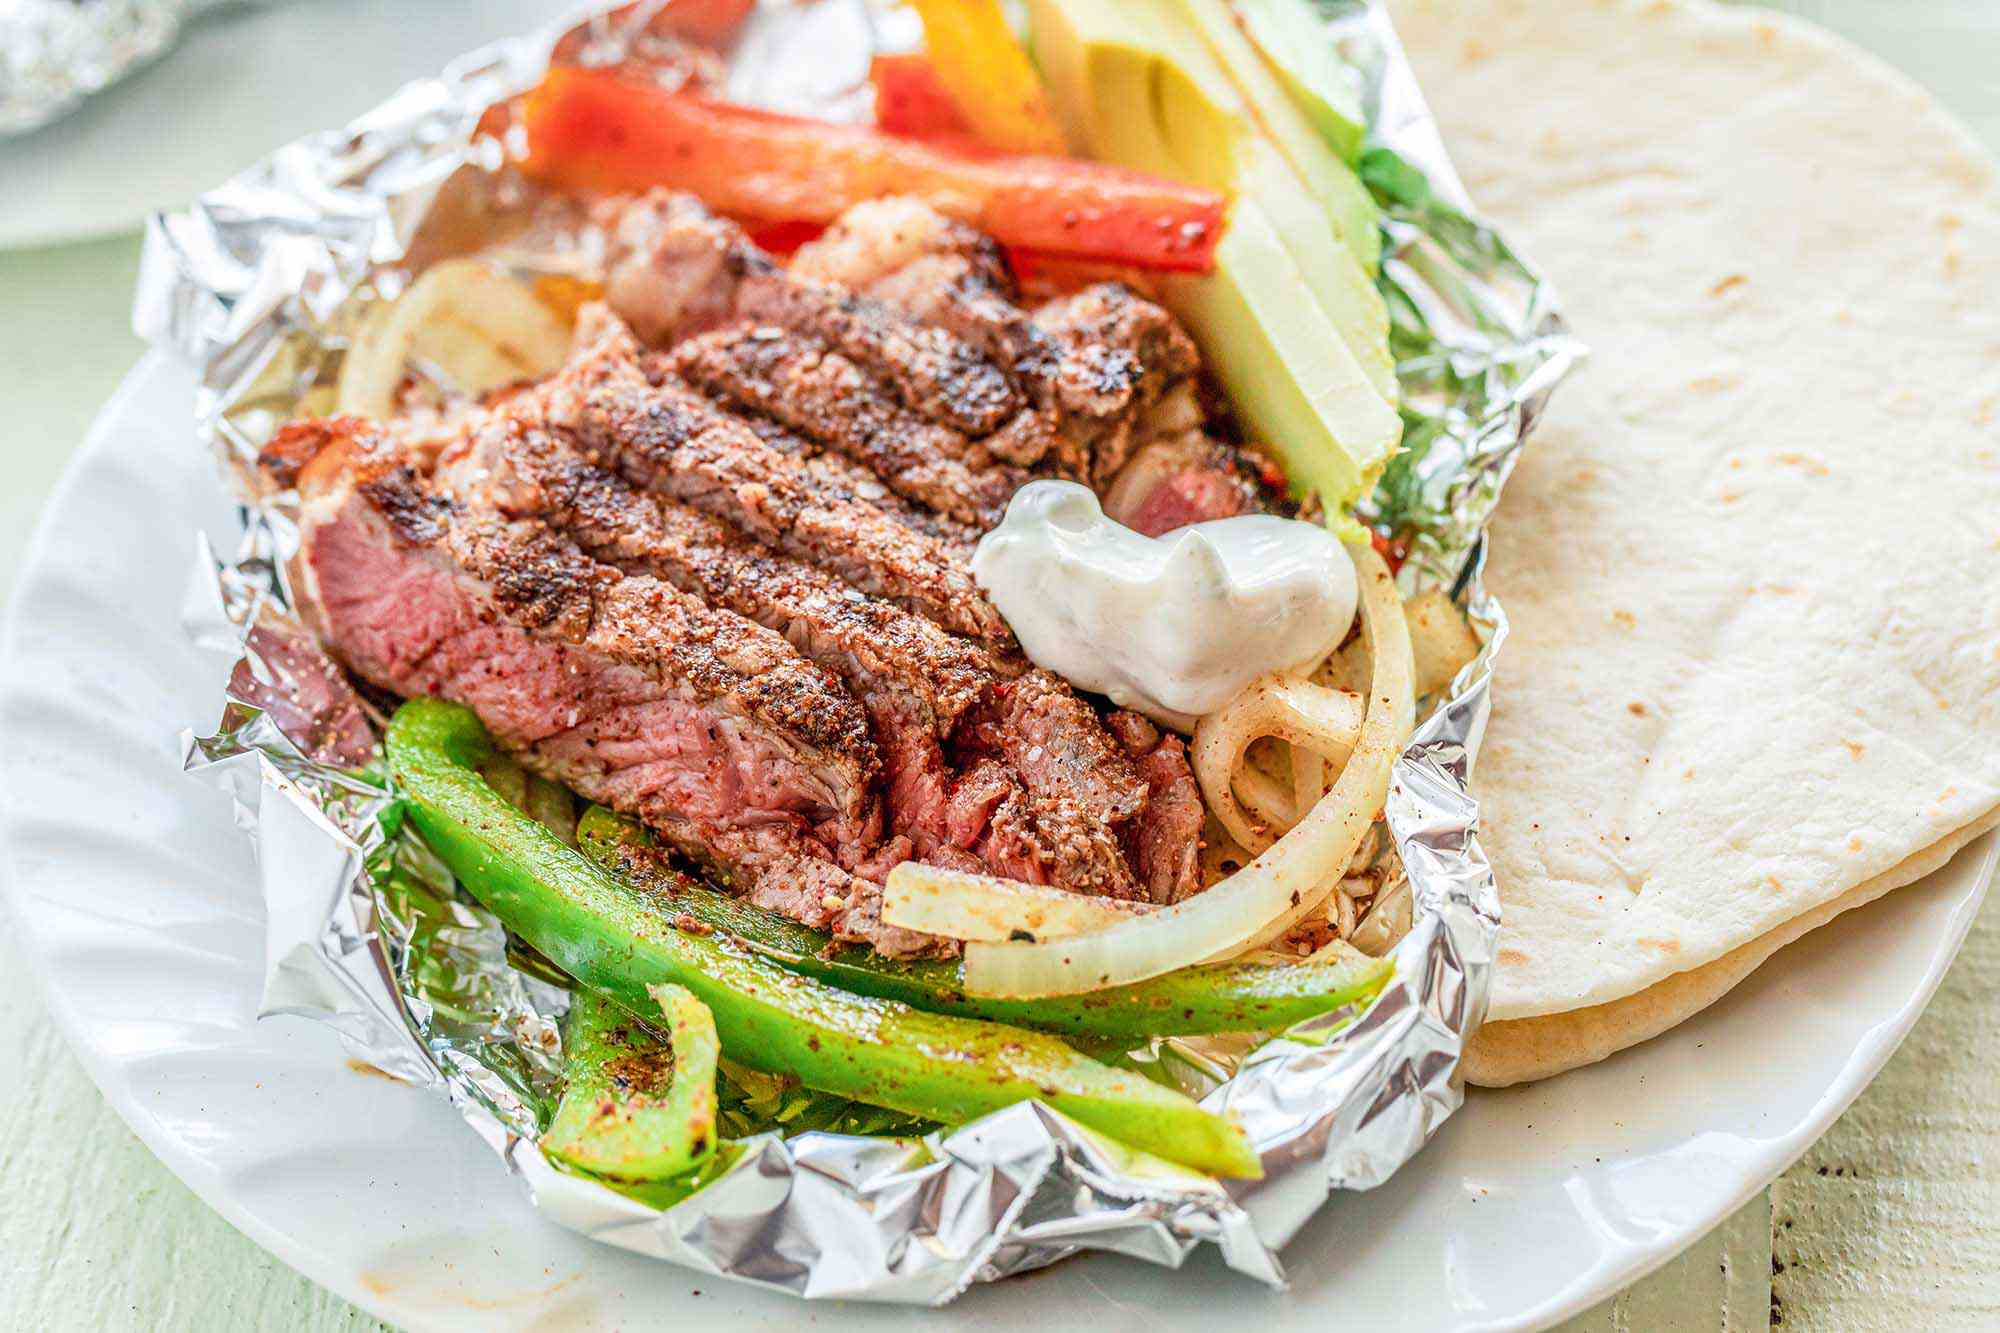 Plate with grilled steak foil packet opened up to reveal steak, peppers, onions inside. Avocado slices and sour cream are also in the packet and a flour tortilla is to the right.